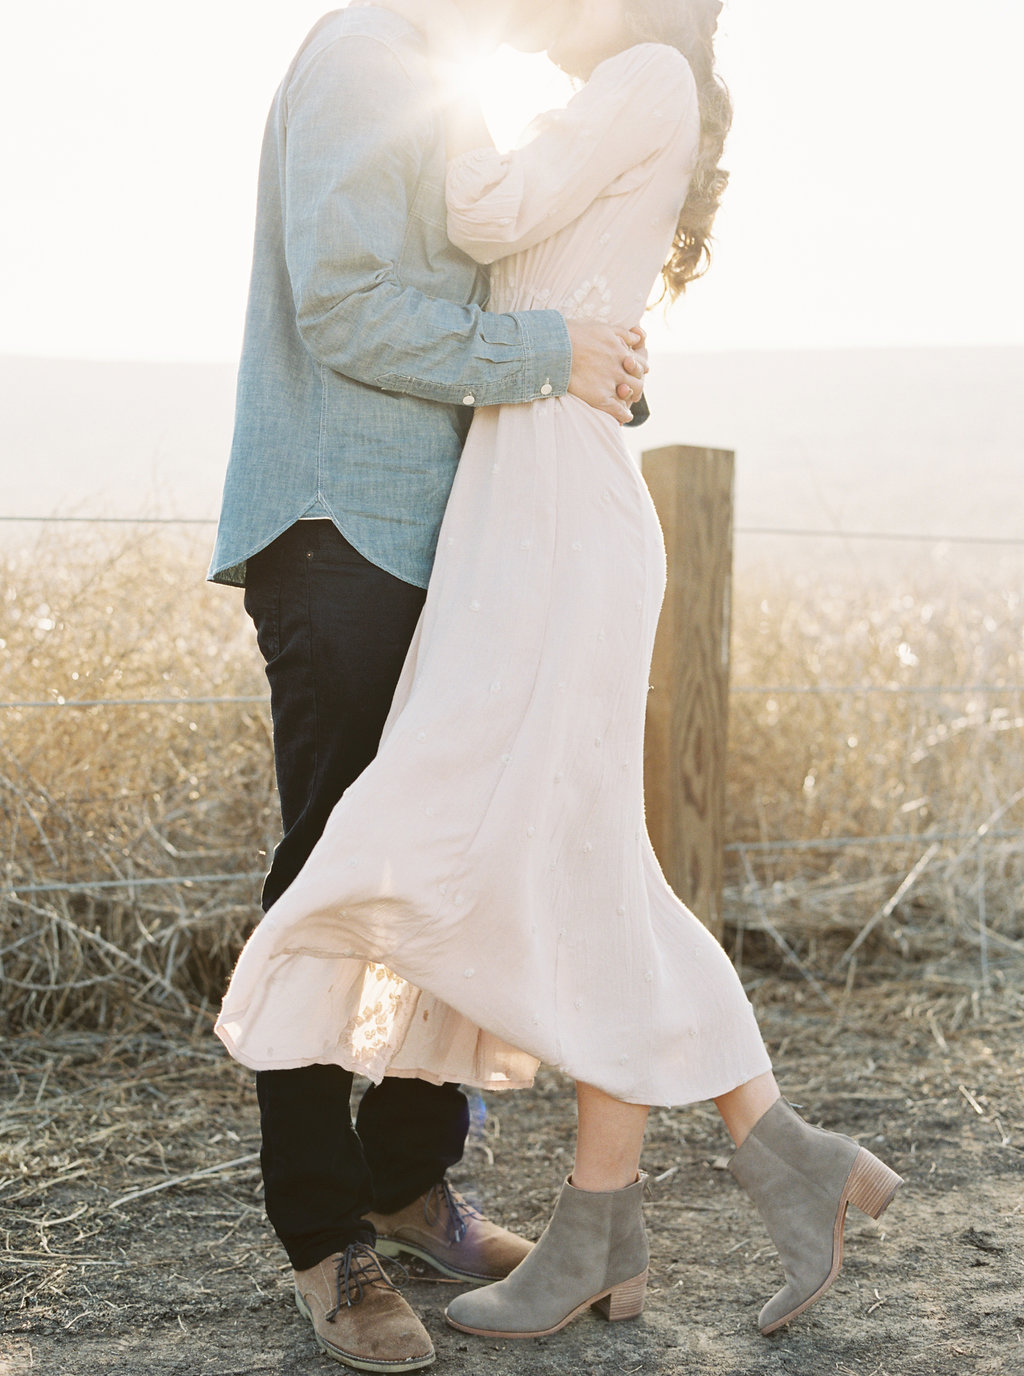 Dreamy golden hour field engagement photo session | Compass Floral | Wedding Florist in San Diego and Southern California | Meiwen Wang Photography    #gardenromantic       #sandiegowedding    #sandiegoweddingflorist       #orangecountyflorist     #floraldesign       #dreamwedding    #fineartwedding    #fineartflowers    #fineartcuration    #weddingdetails    #weddinginspiration    #engaged #engagementphotos #fieldphotos #dreamyphotos #goldenhour #engagementphotooutfitinspiration